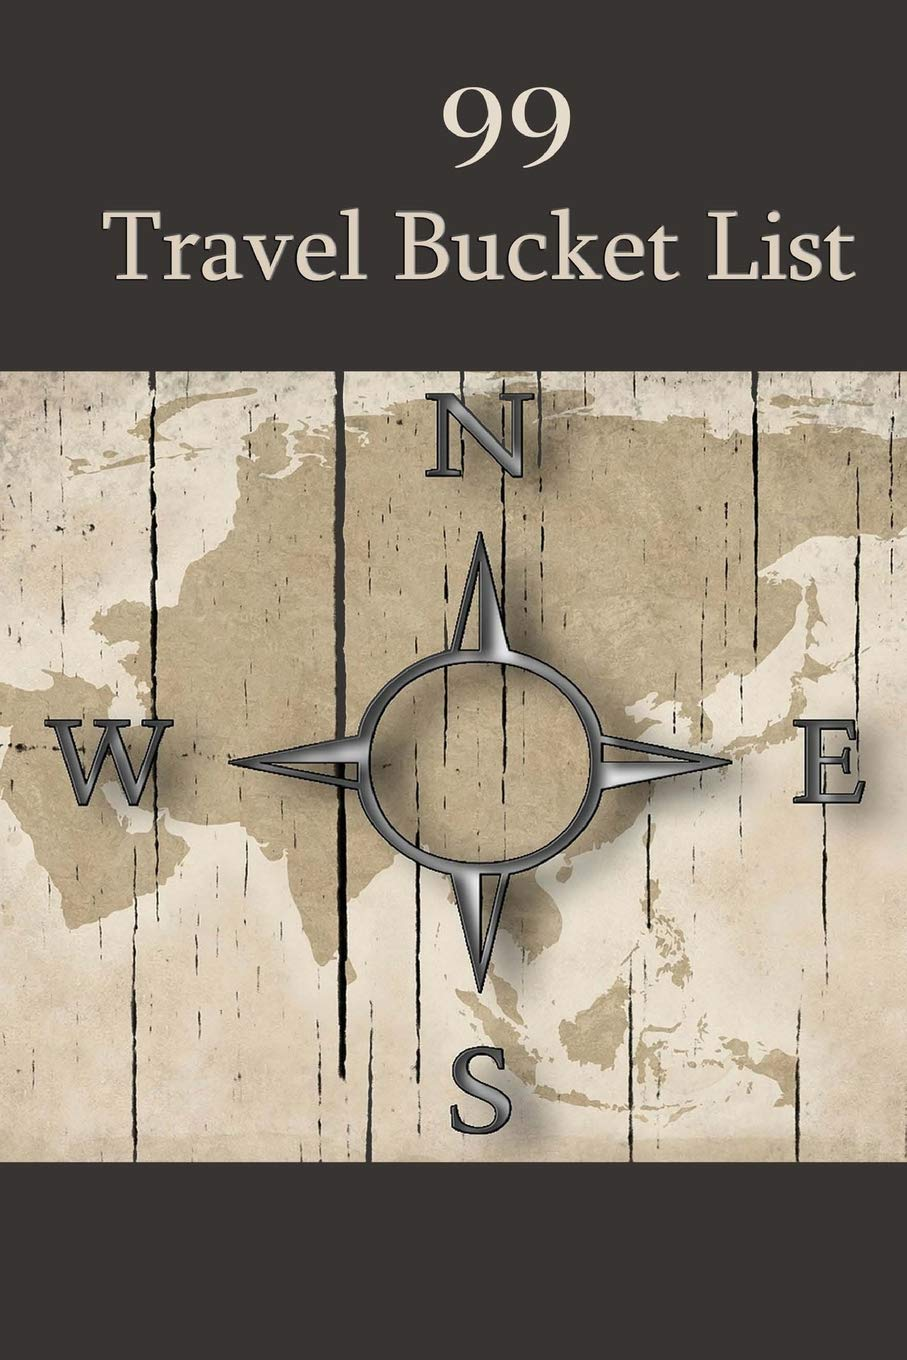 99 Travel Bucket List The 99 travel bucket list book for